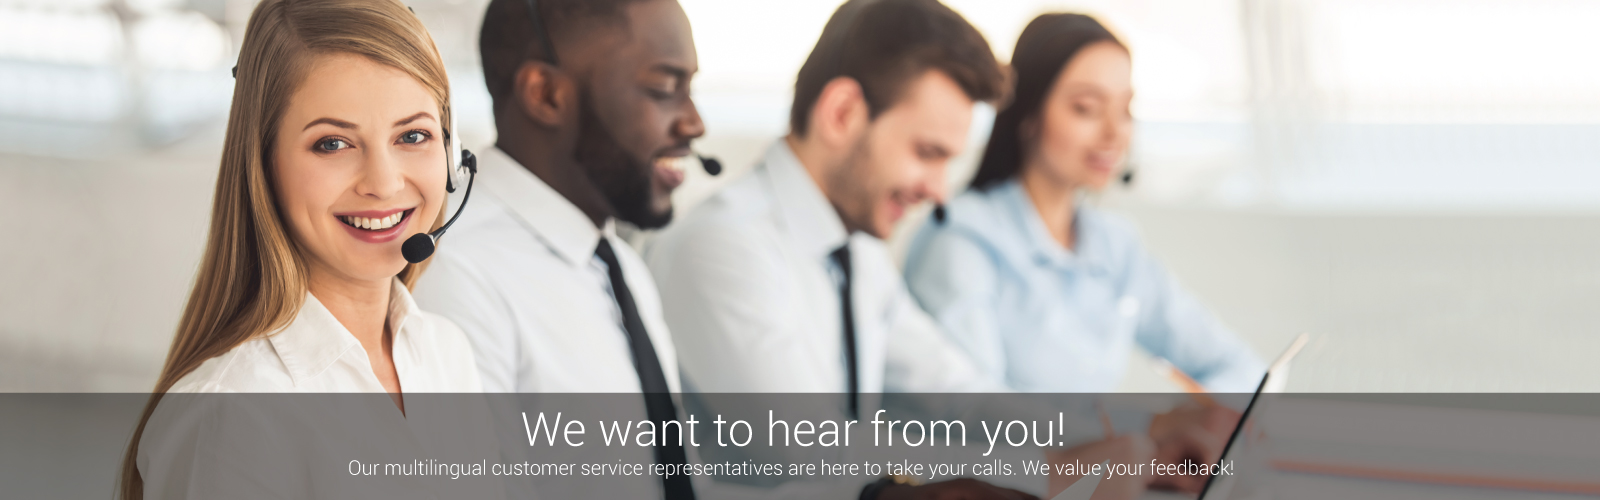 We want to hear from you!Our multilingual customer service representatives are here to take your call 24 hours a day, 7 days a week.We value your feedback!